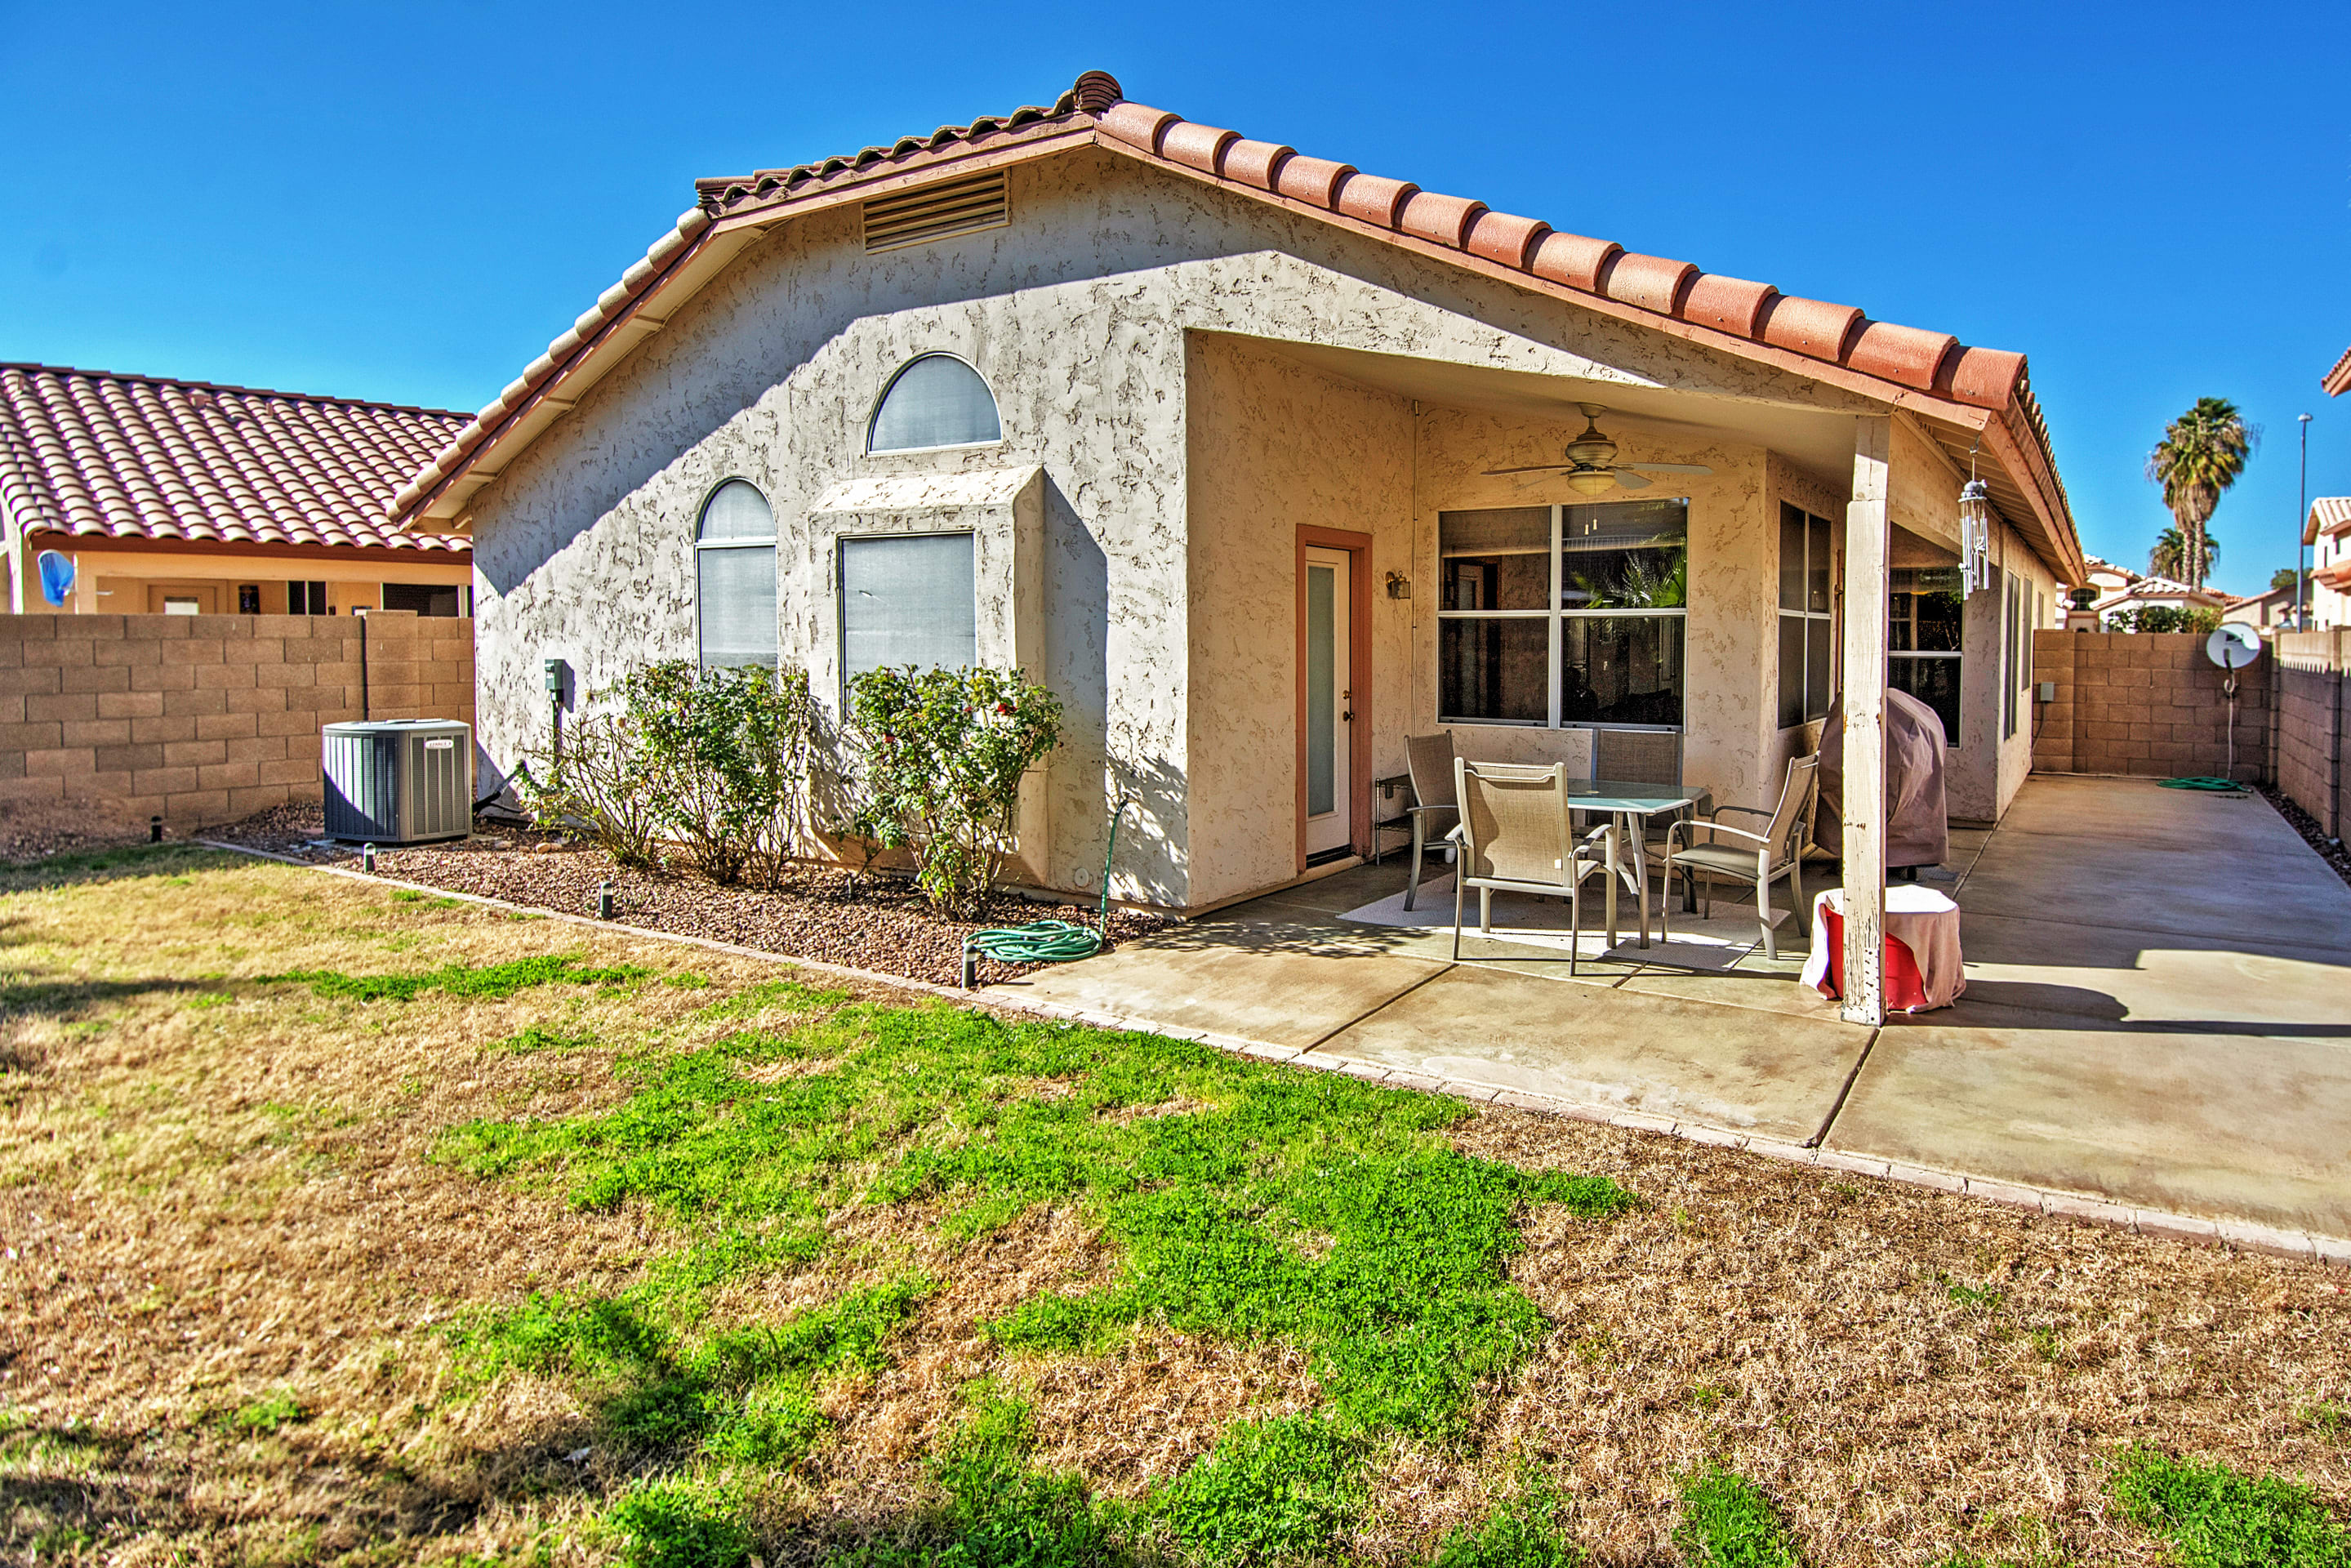 Peoria Vacation Rental | 3BR | 2BA | Single Story | 1,600 Sq Ft